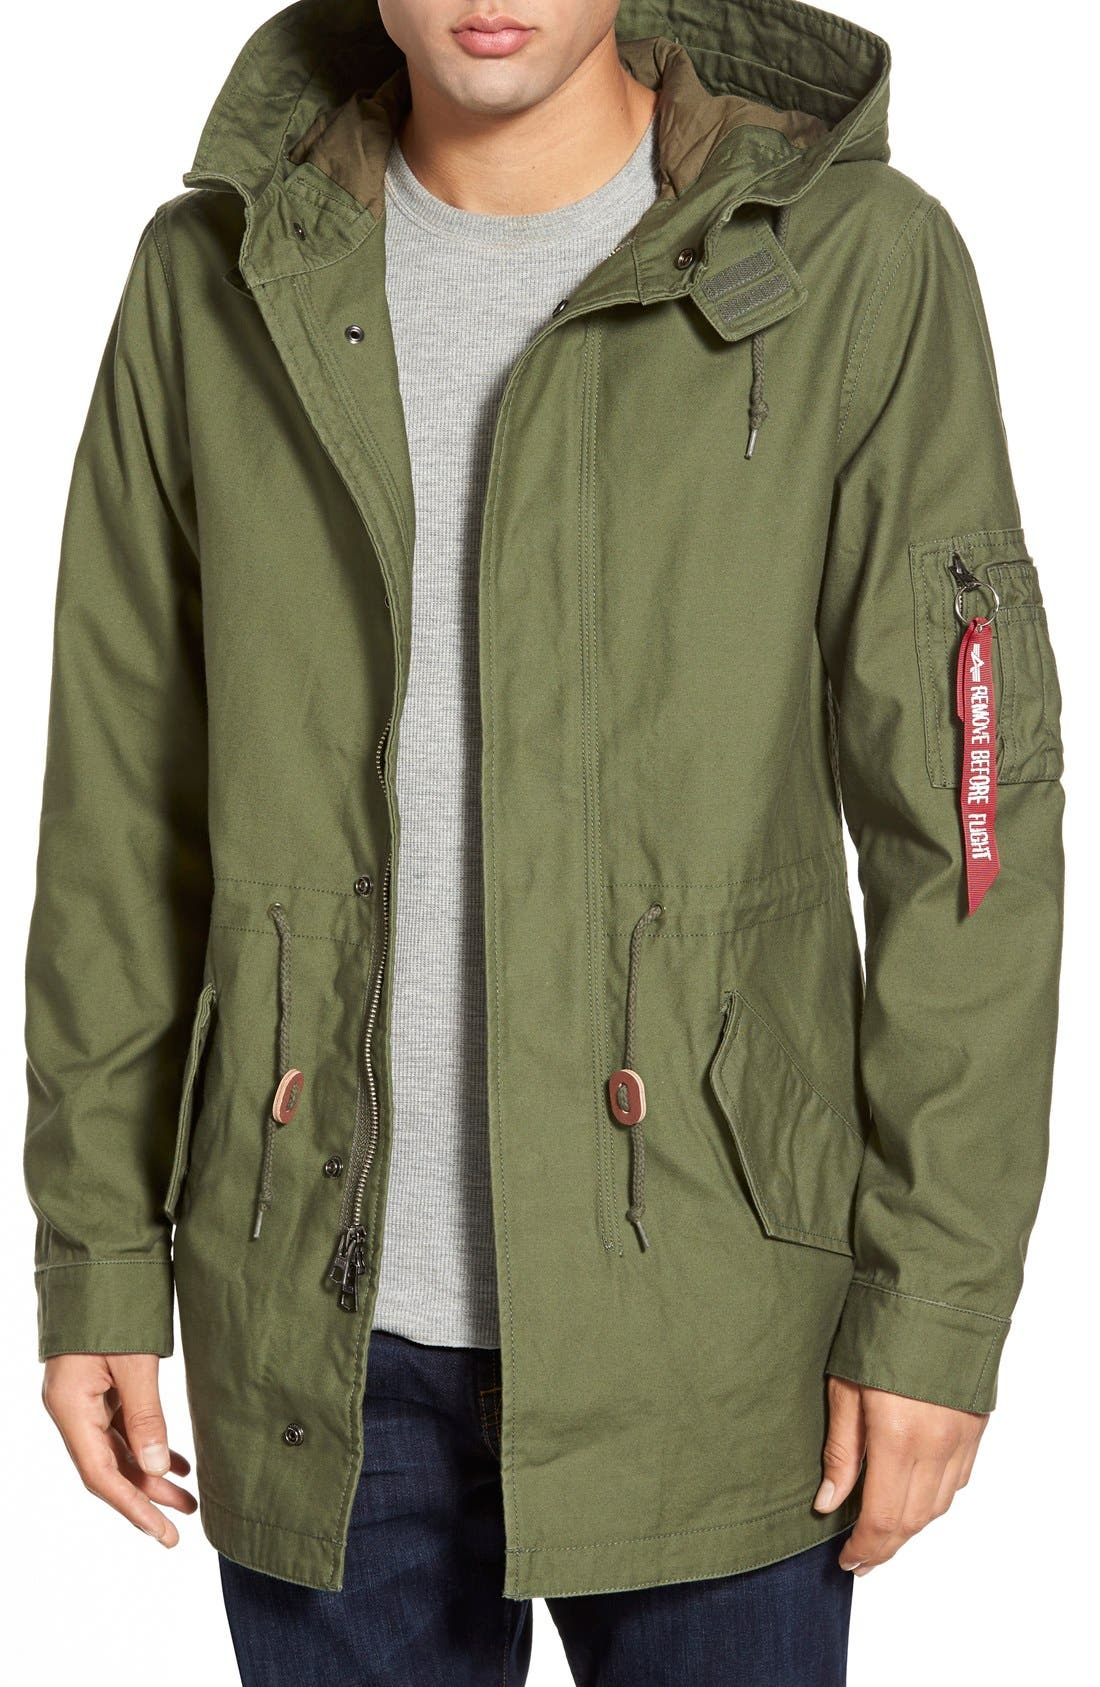 Men's Green Coats & Men's Green Jackets | Nordstrom